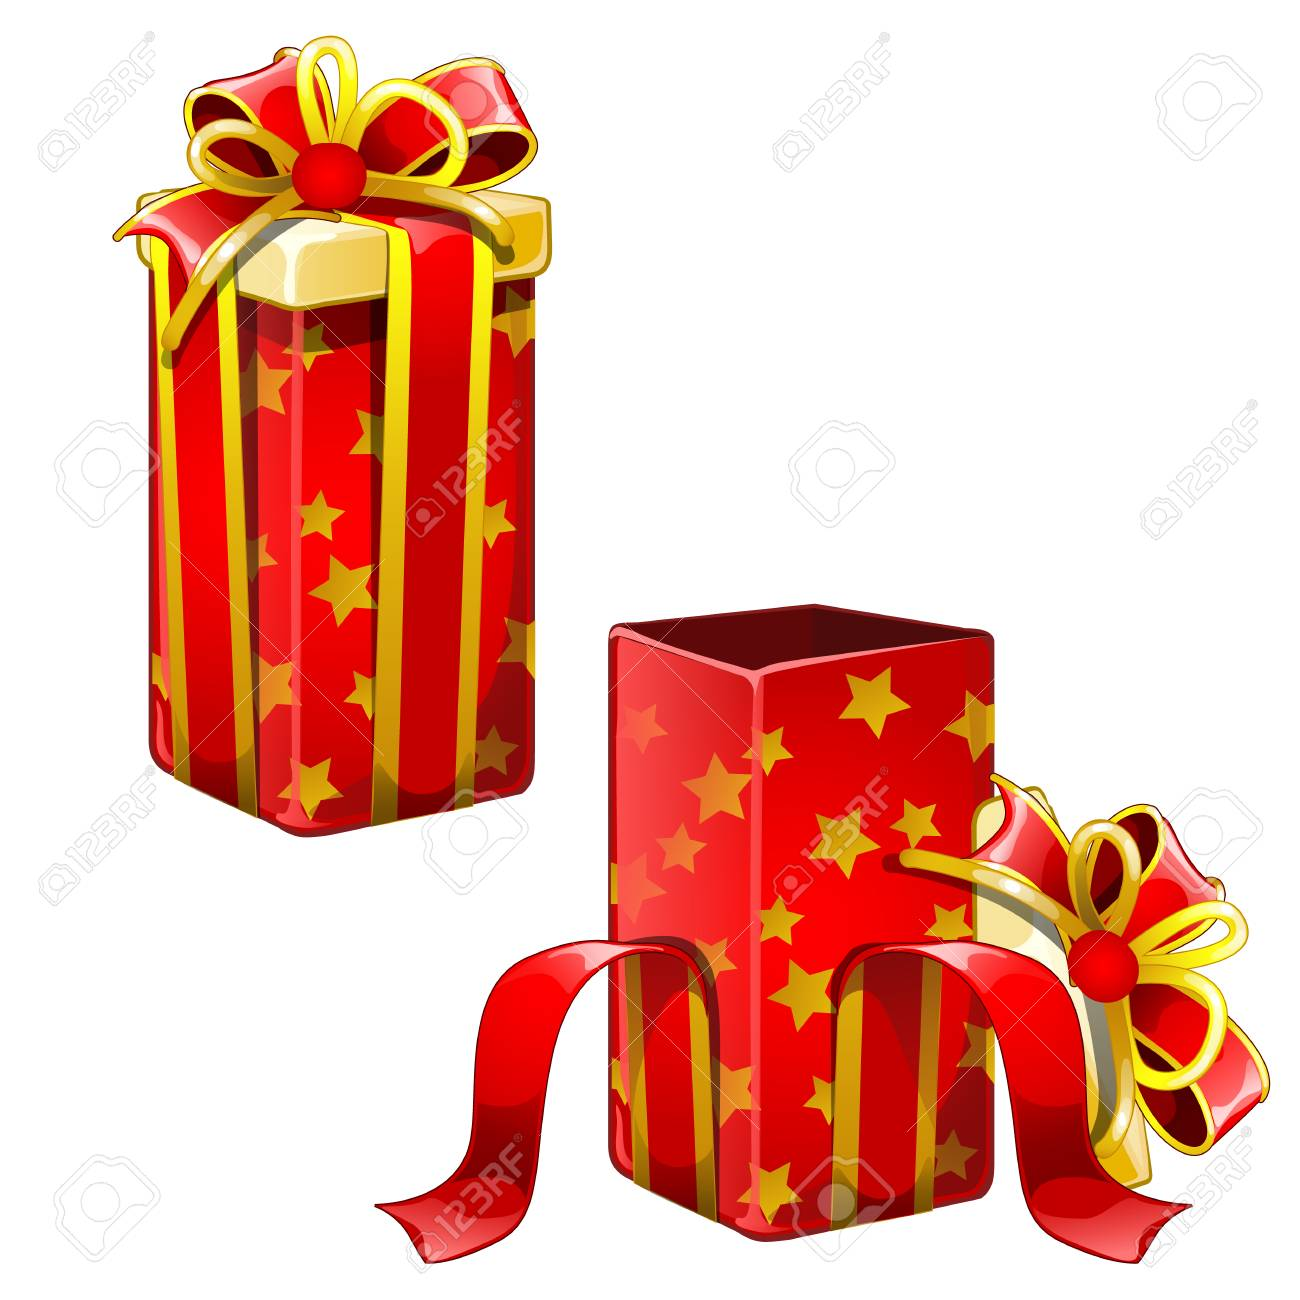 Two Red Gift Boxes Open And Closed Christmas New Year Birthday